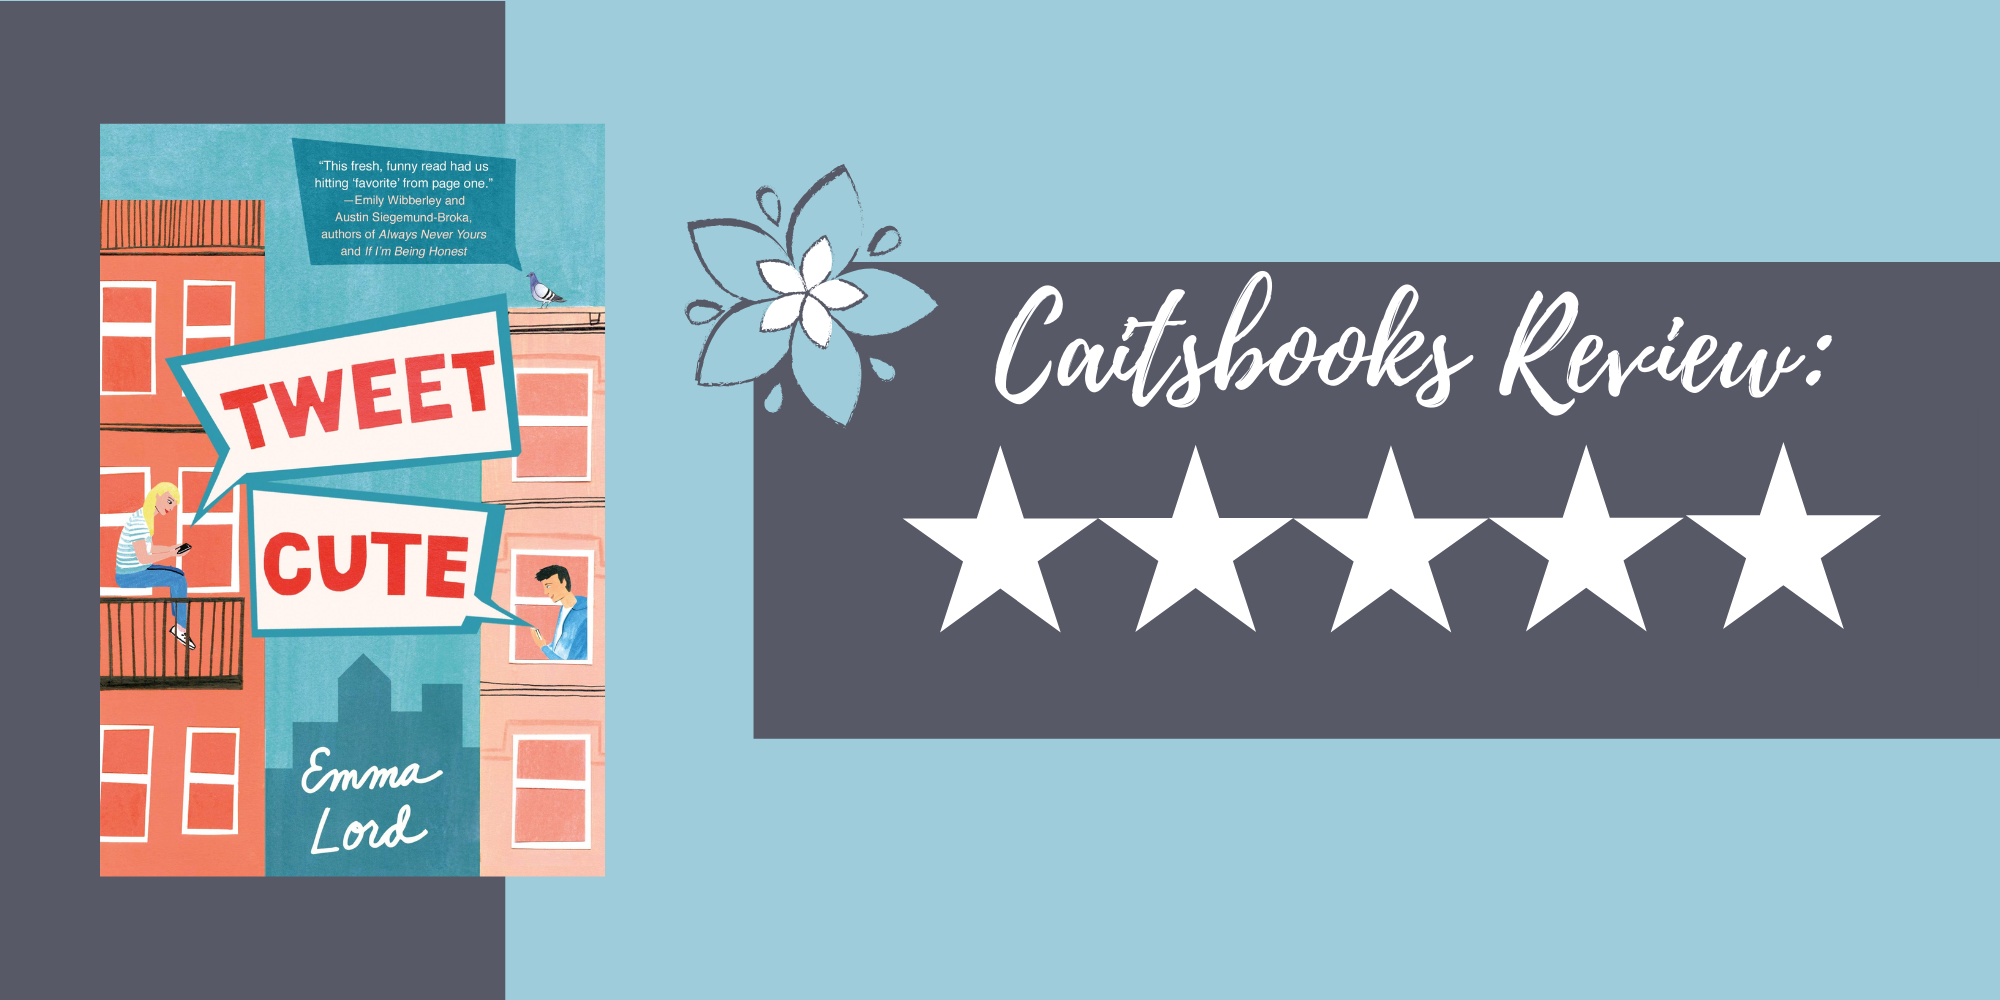 Caitsbooks Reviews: Tweet Cute by Emma Lord (5 Stars)